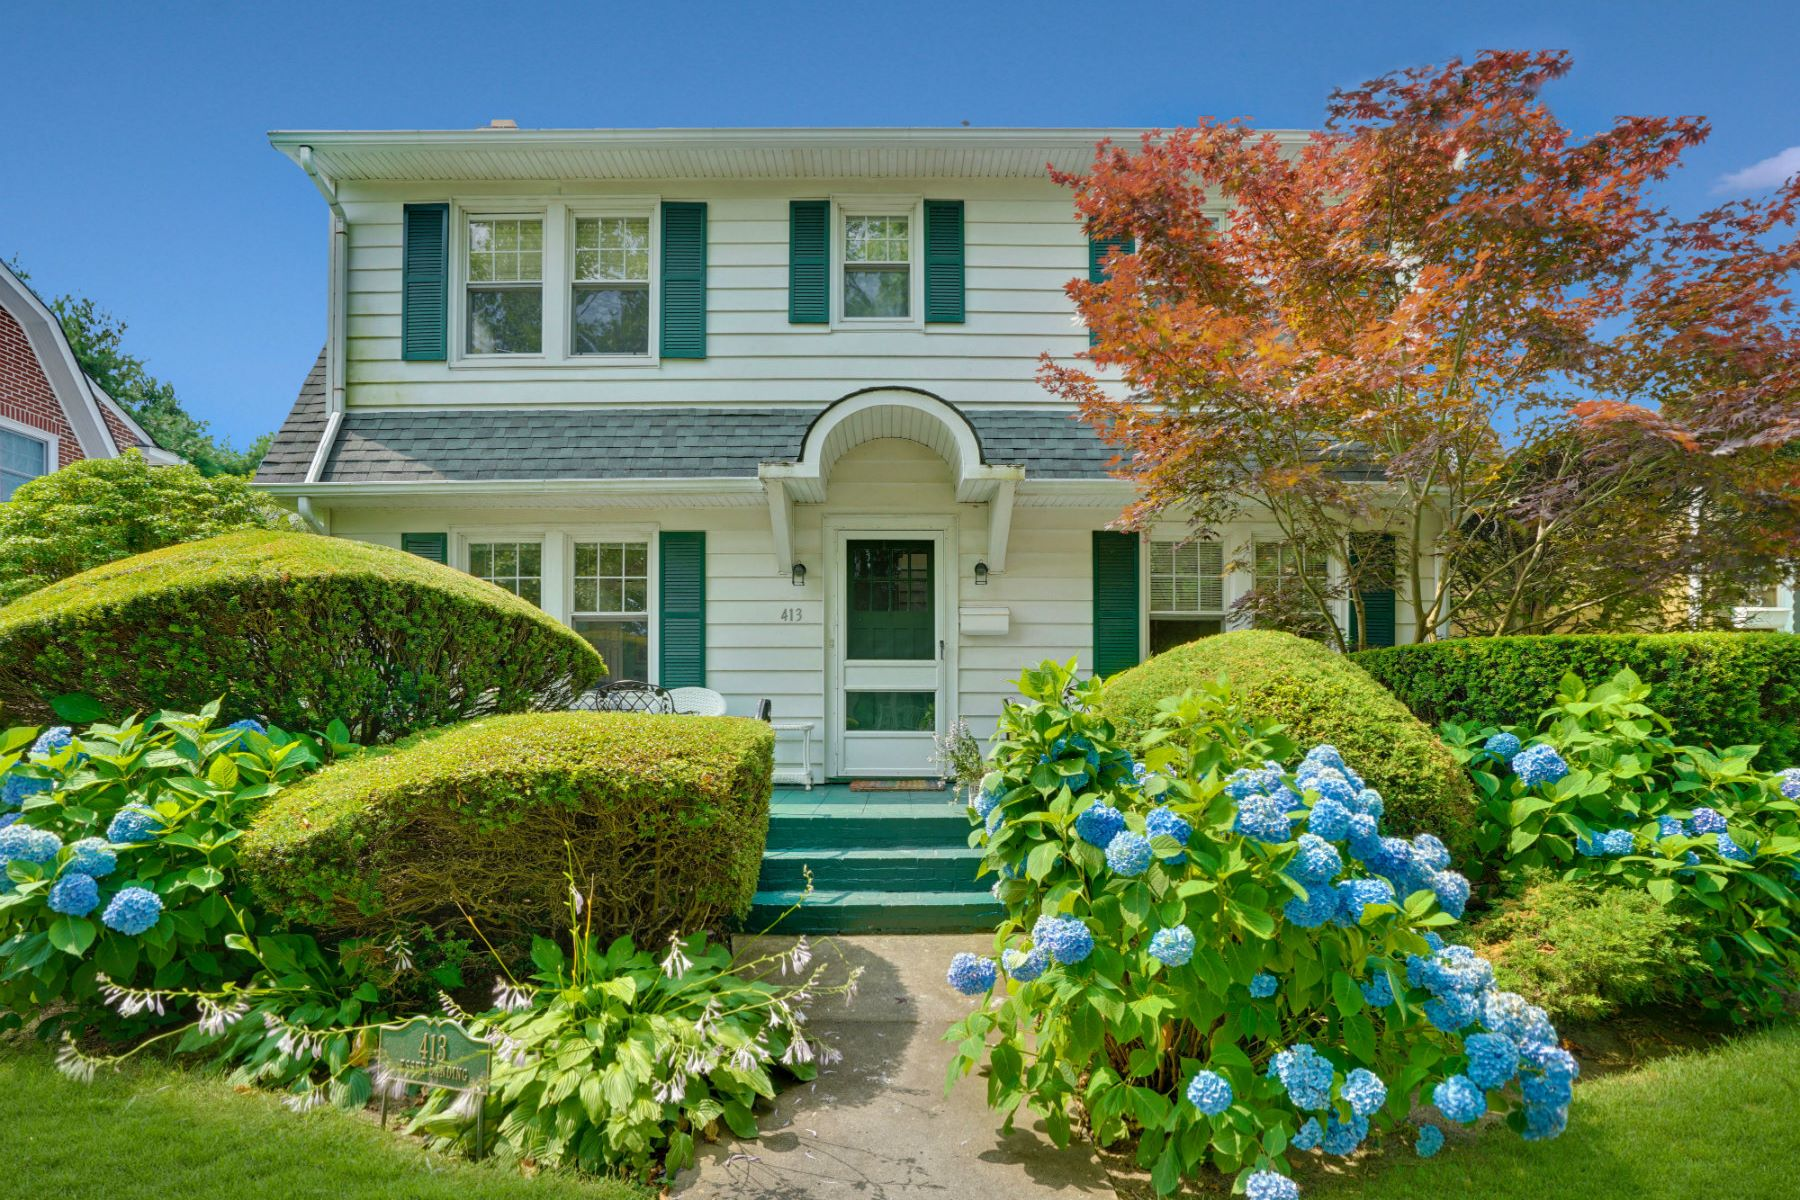 Single Family Homes for Sale at Charming Dutch Colonial 413 Essex Avenue Spring Lake, New Jersey 07762 United States